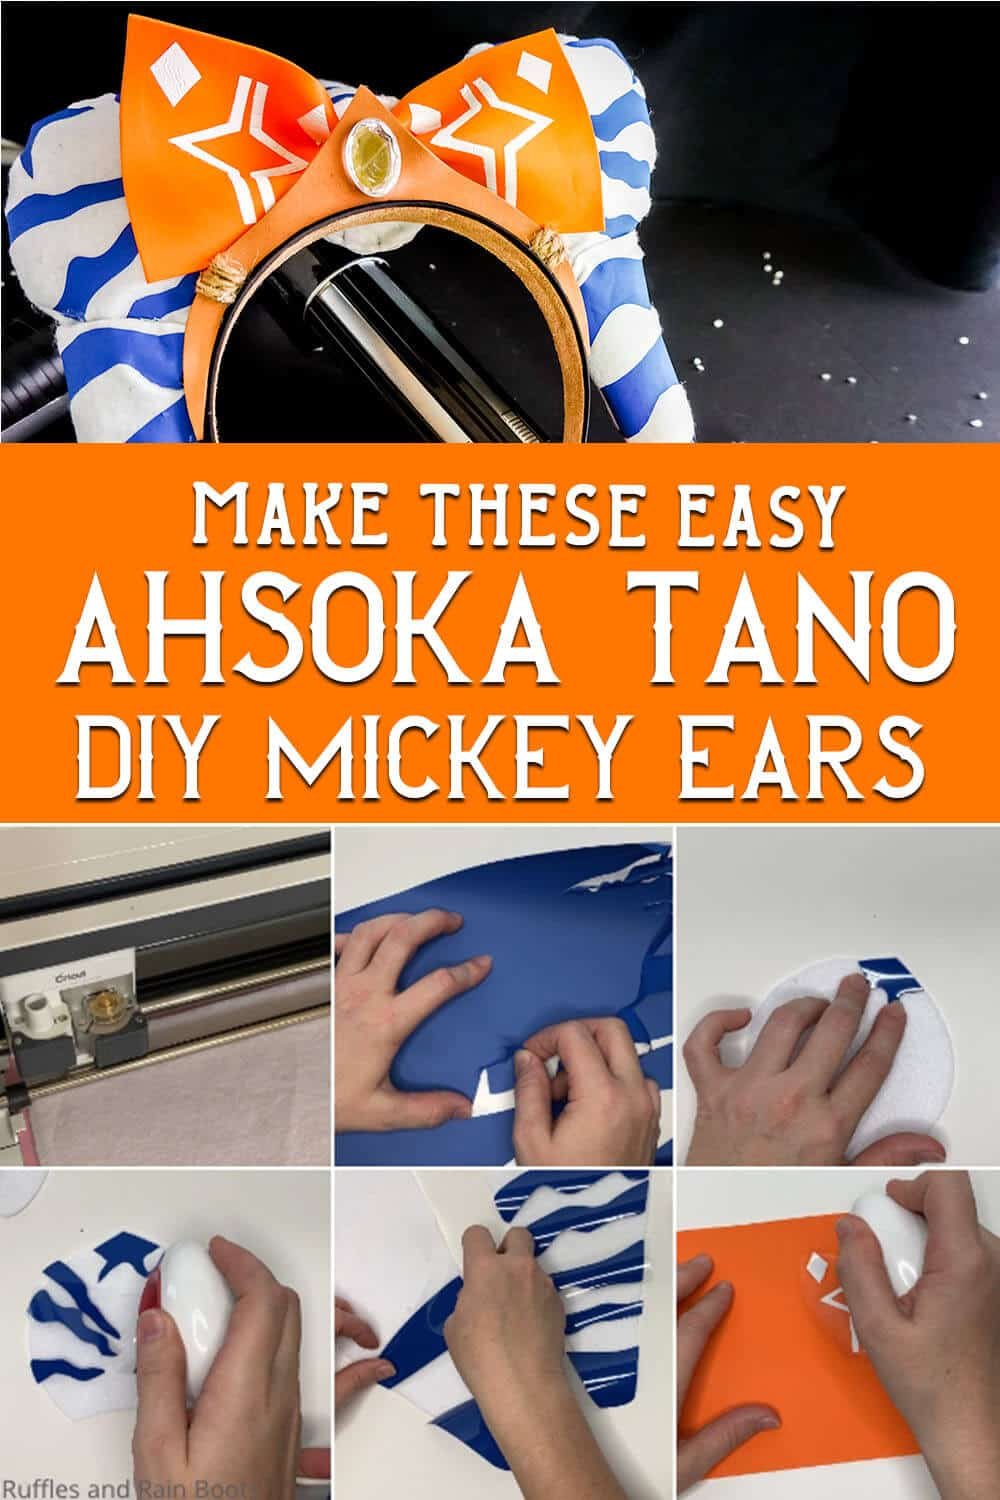 photo collage of star wars mickey ears diy pattern with text which reads make these easy ahsoka tano diy mickey ears